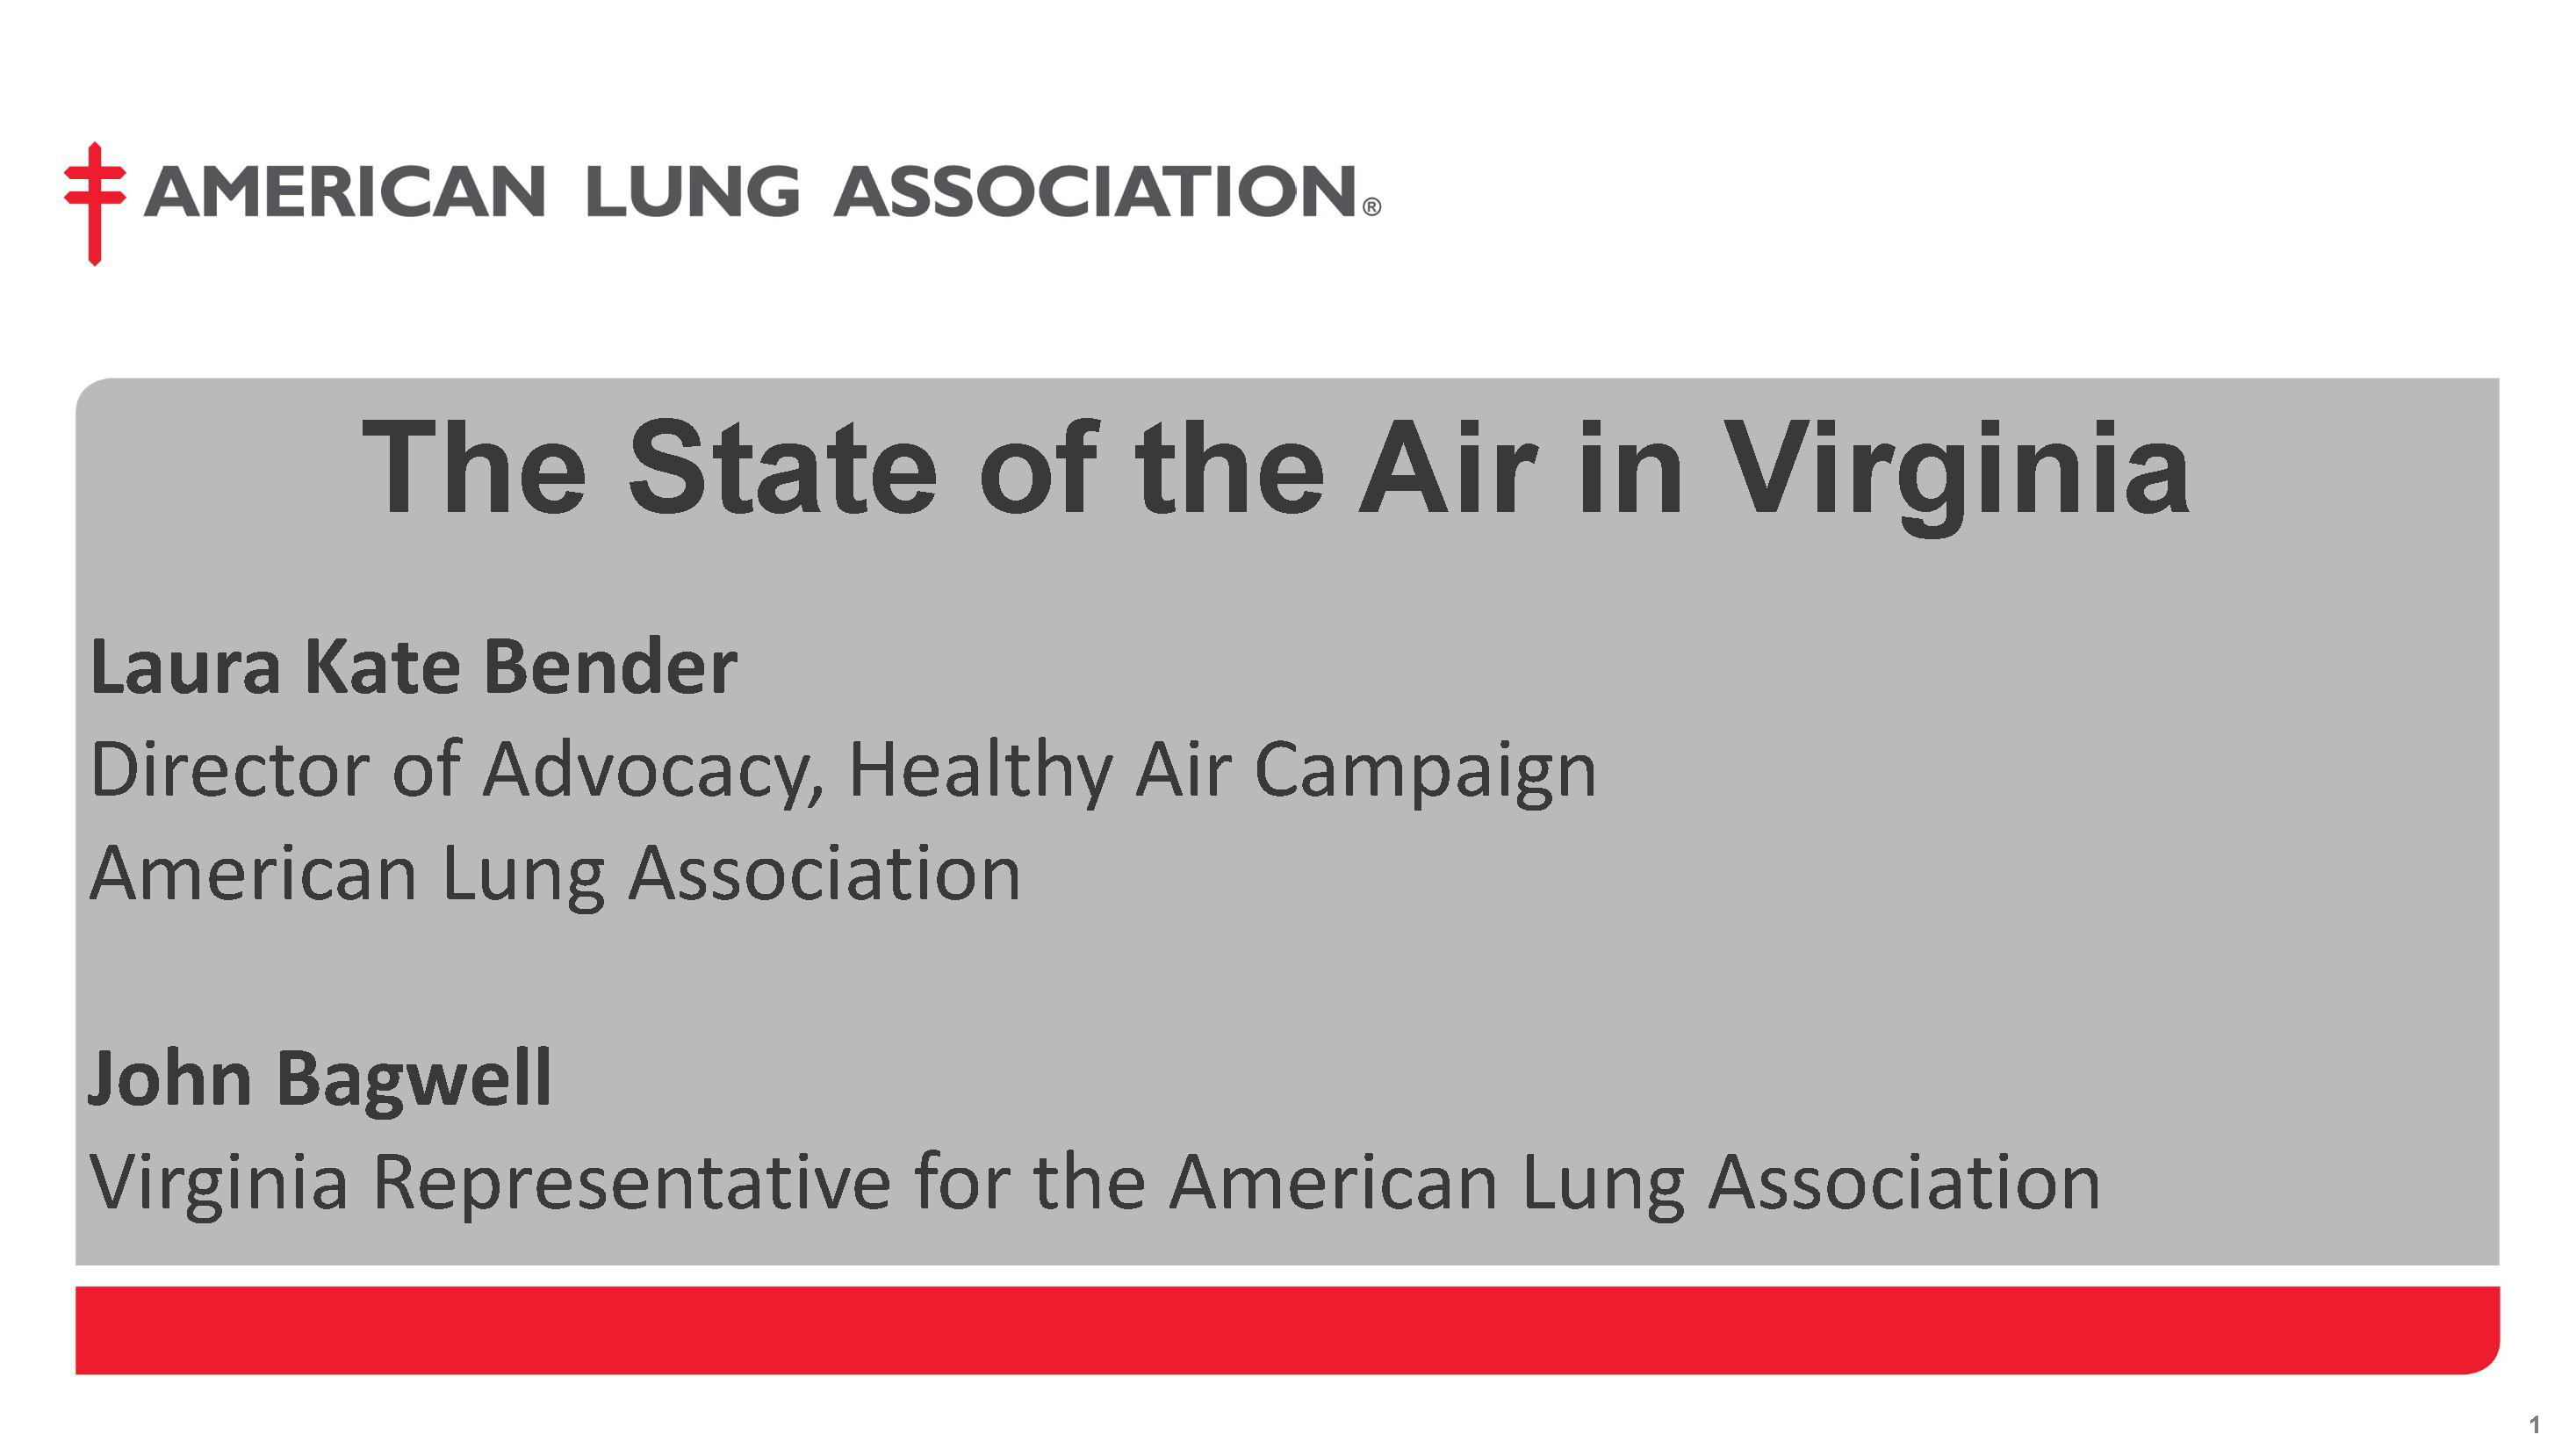 The State of the Air in Virginia